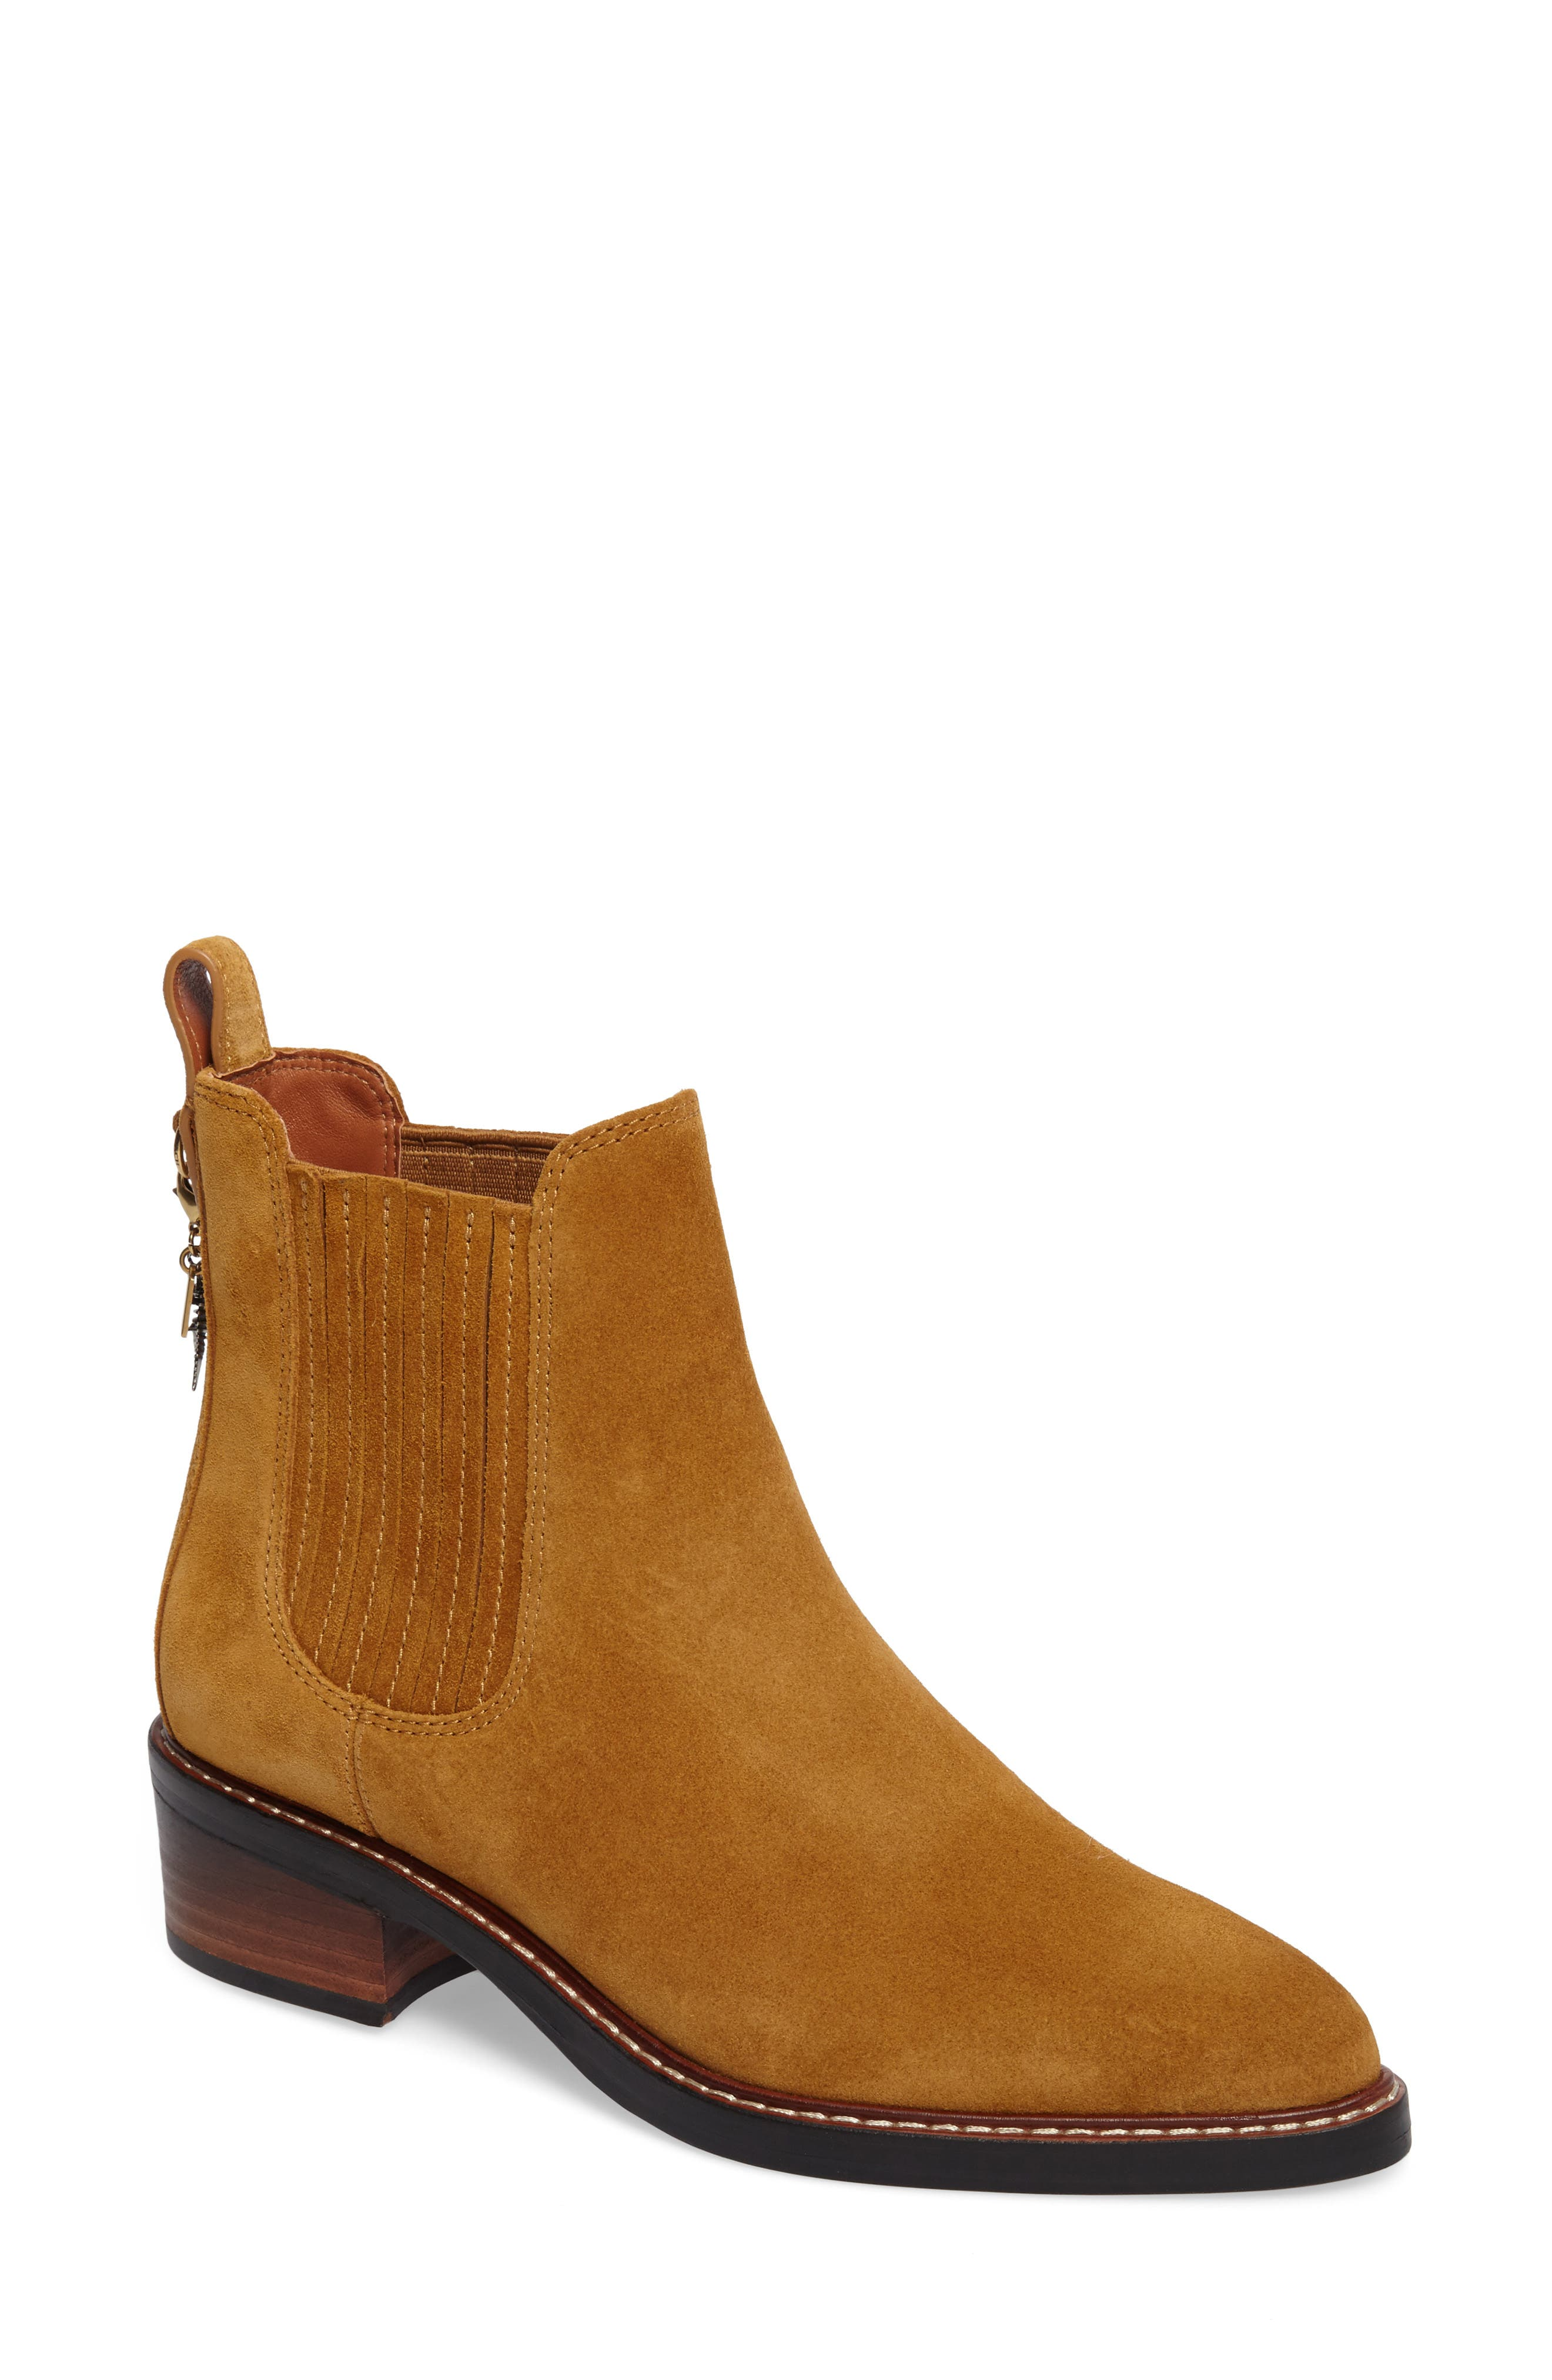 COACH Bowery Chelsea Boot (Women)